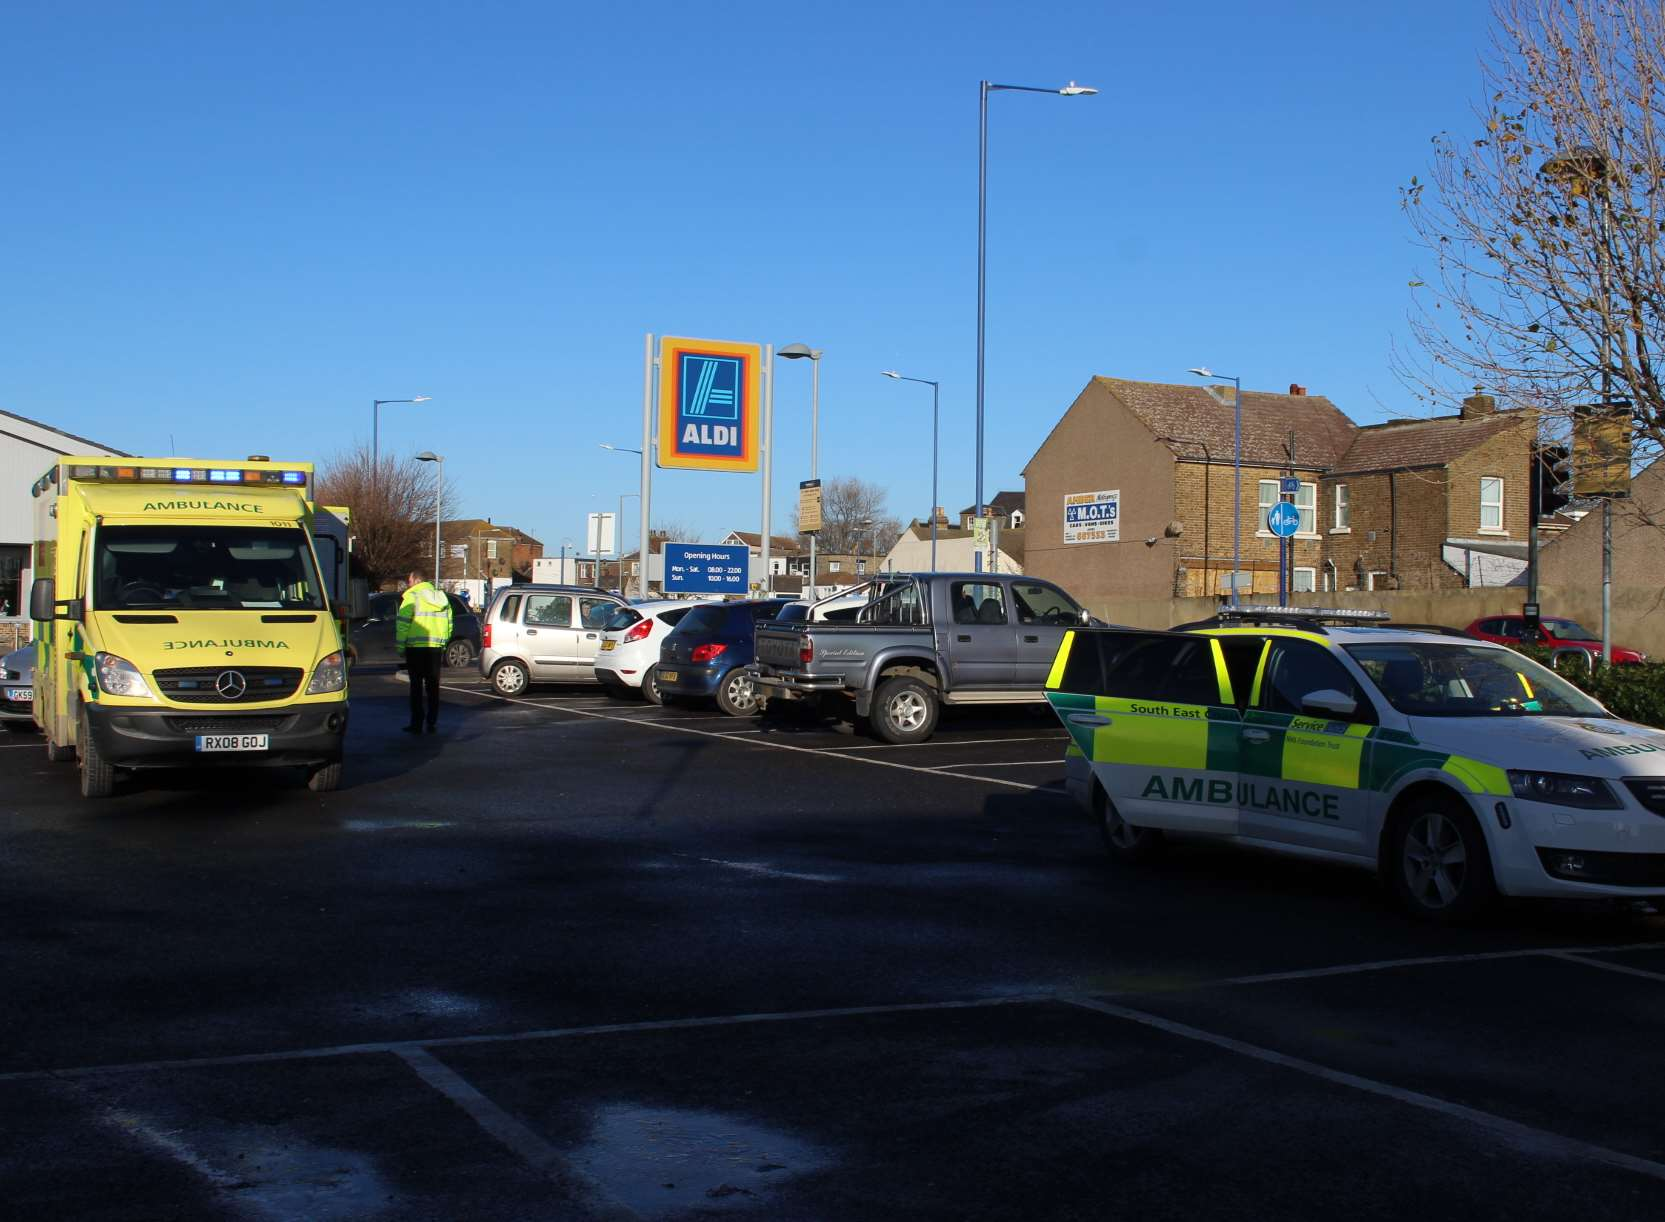 Ambulance in Aldi car park, Sheerness, today.